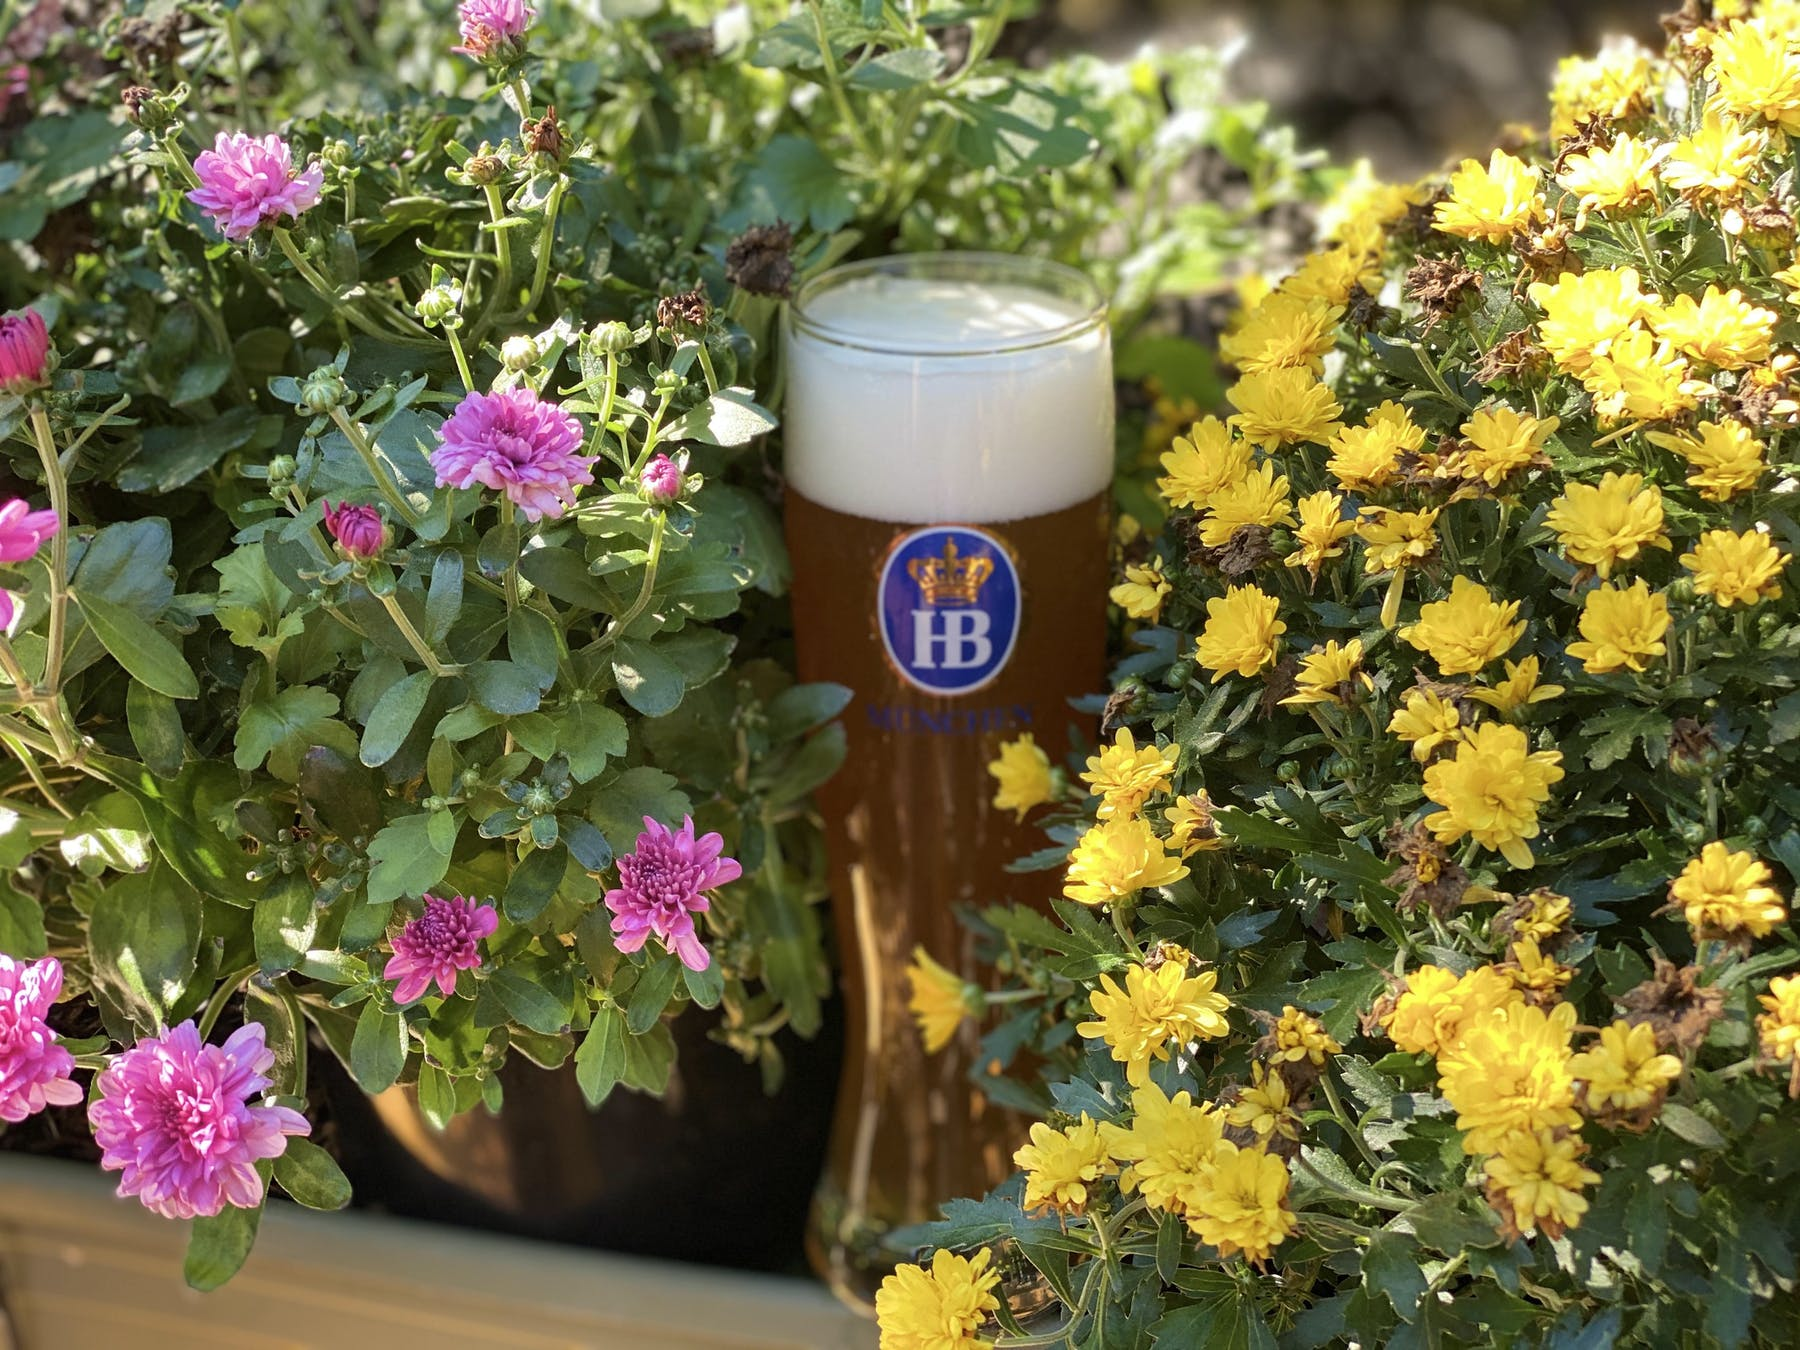 a beer glass with flowers around it